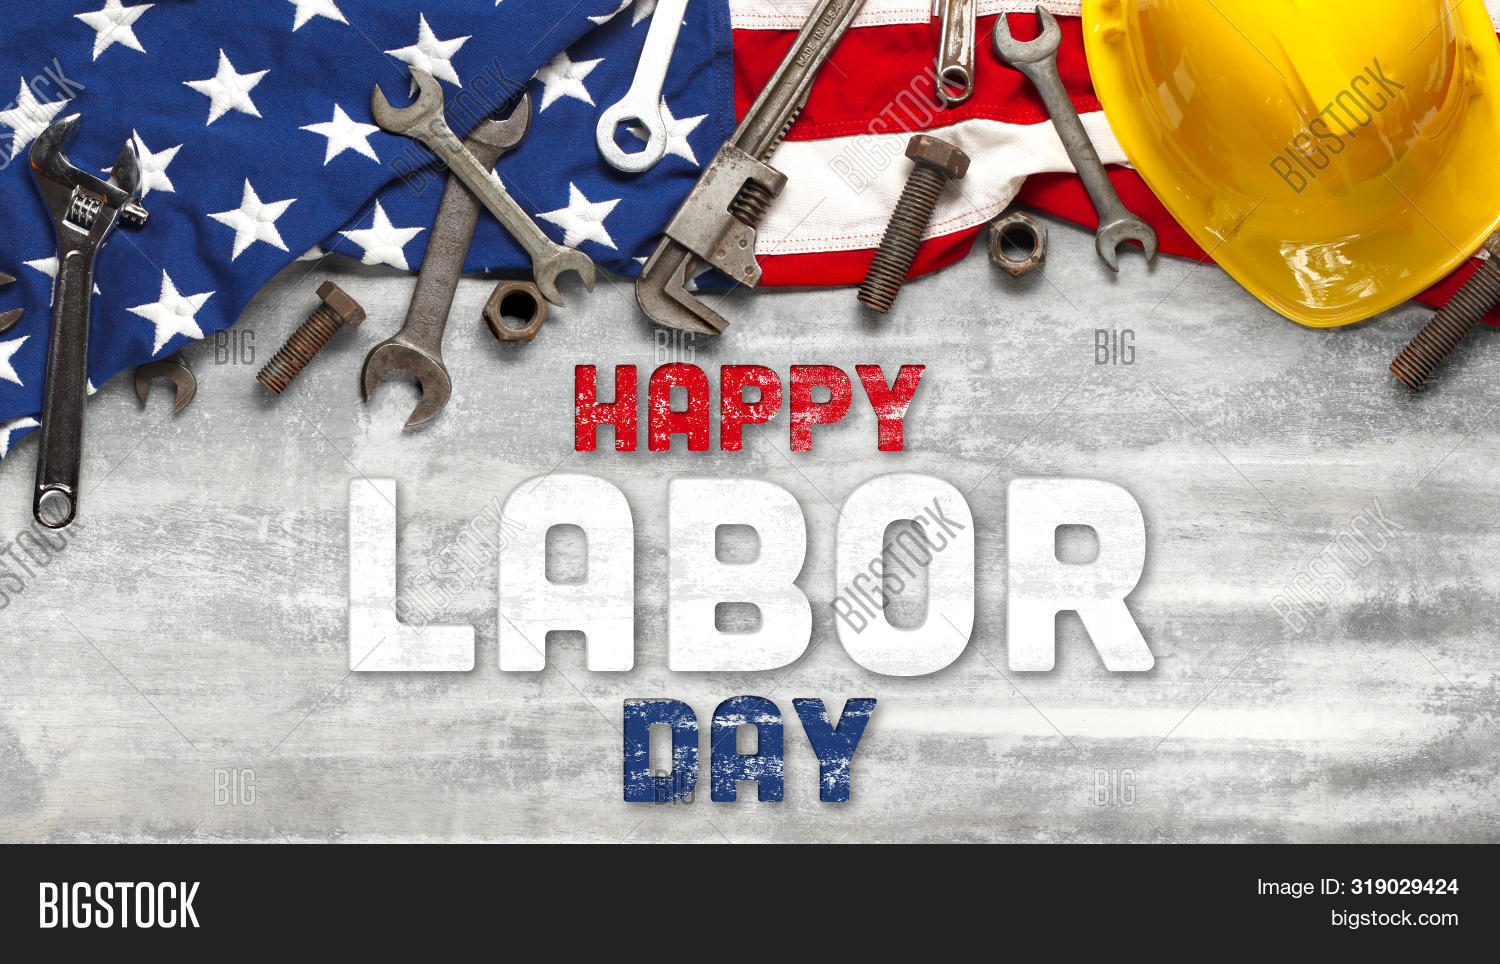 america,american flag,background,day,flag,freedom,grunge,happy,happy labor day,holiday,independence,labor,labor day,labour,labour day,patriot,patriotic,patriotism,pride,tool,tools,us,us flag,usa,usa flag,vintage,work